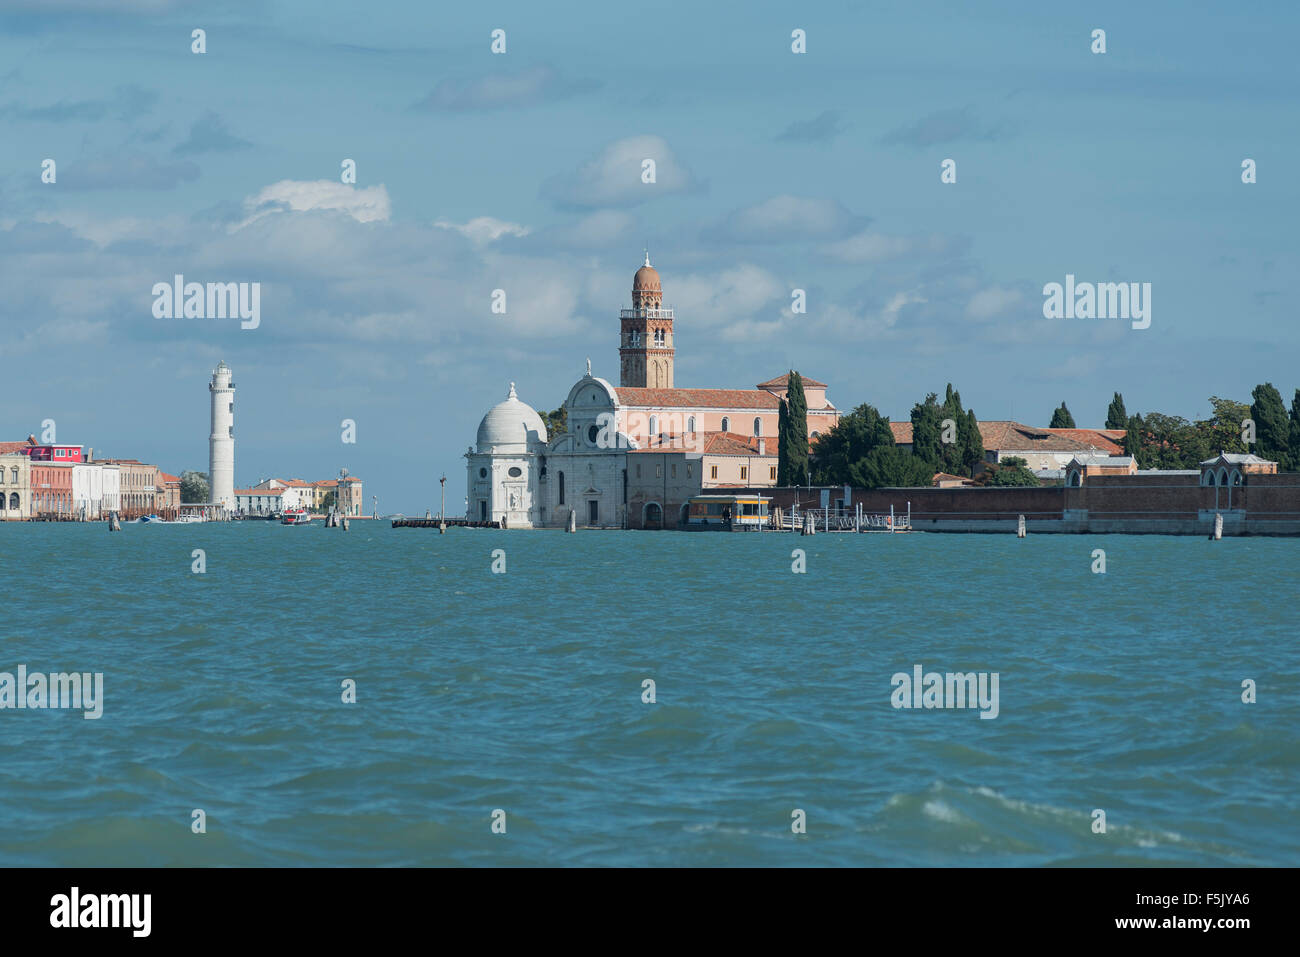 Cemetery island San Michele, San Michele in Isola church and hexagonal Cappella Emiliani, Murano lighthouse, Venetian - Stock Image